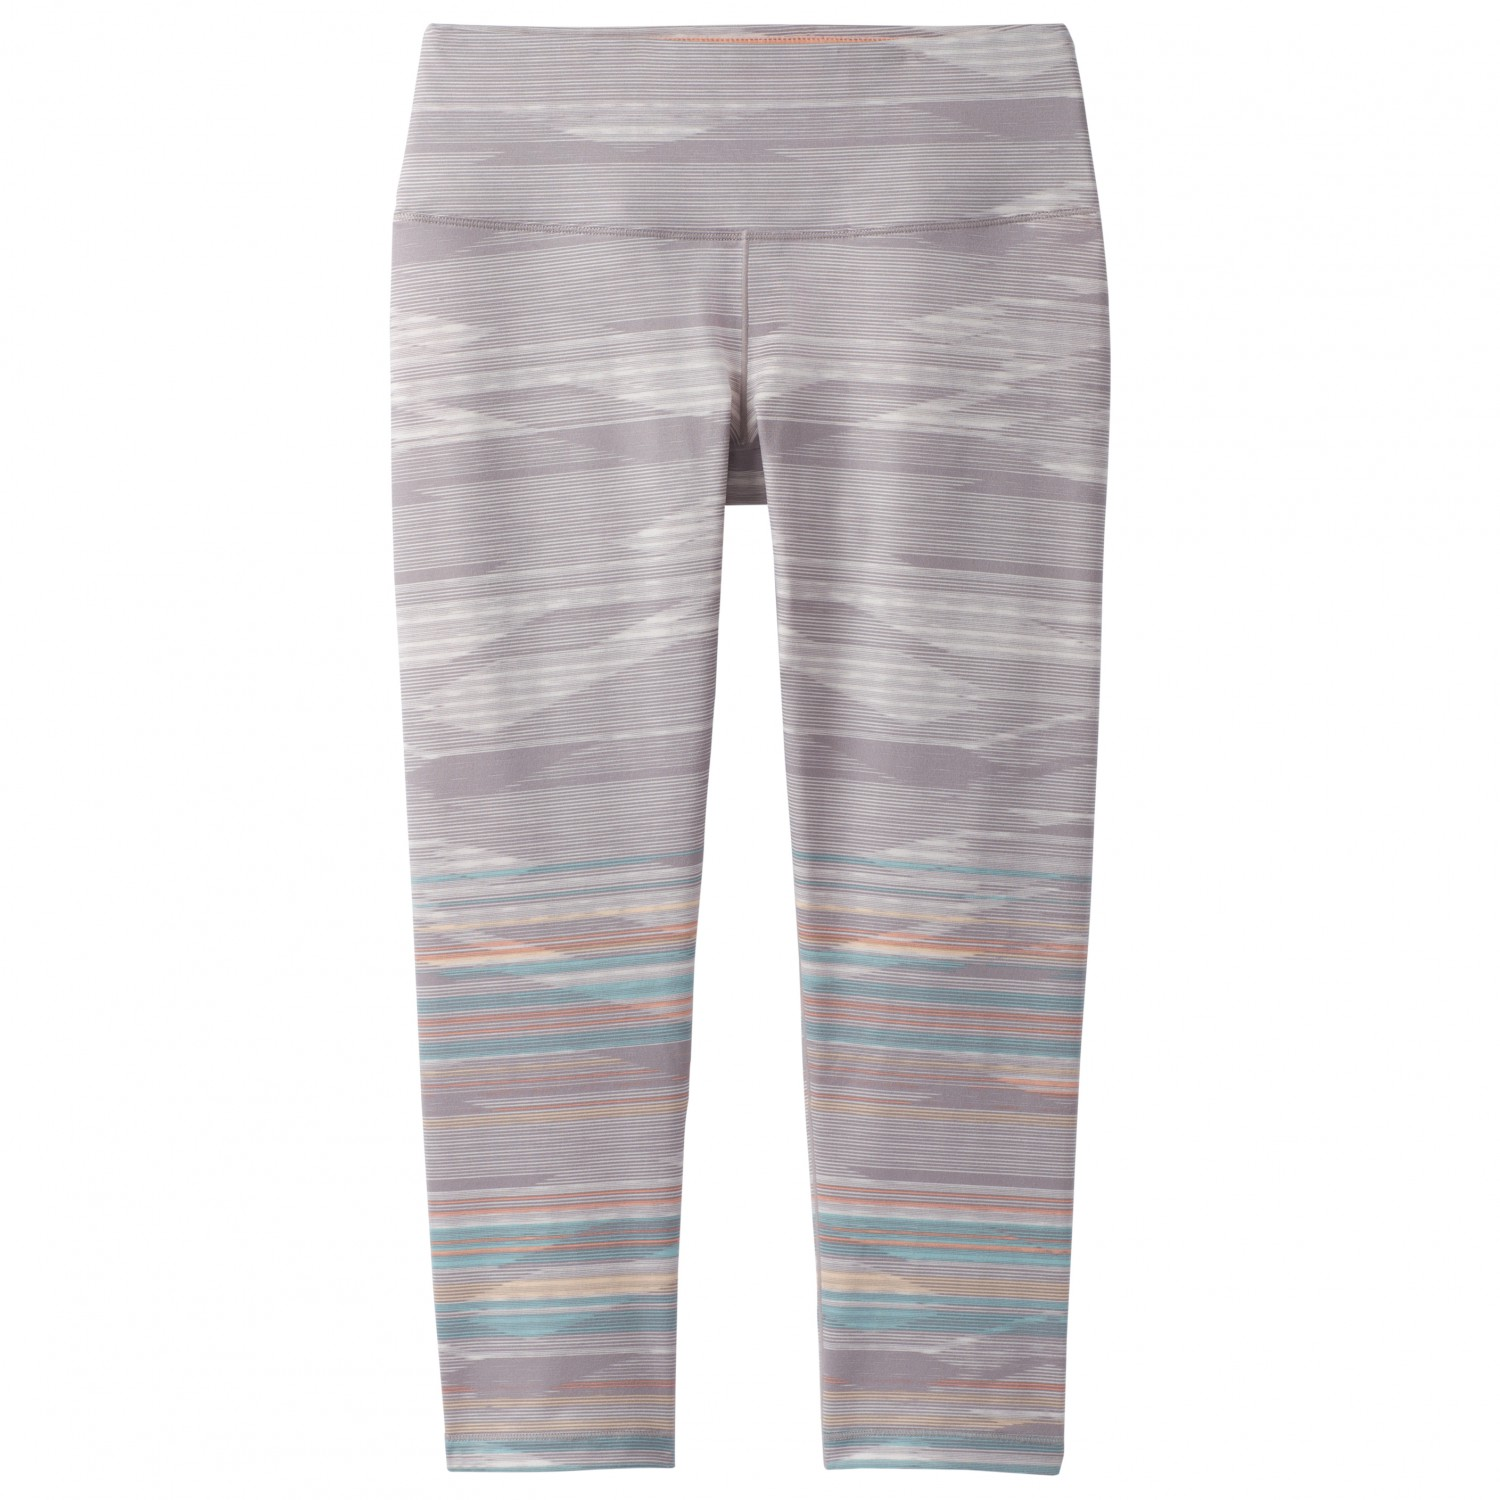 0baca393534b5 Prana Pillar Printed Capri - Yoga Leggings Women's | Free UK ...